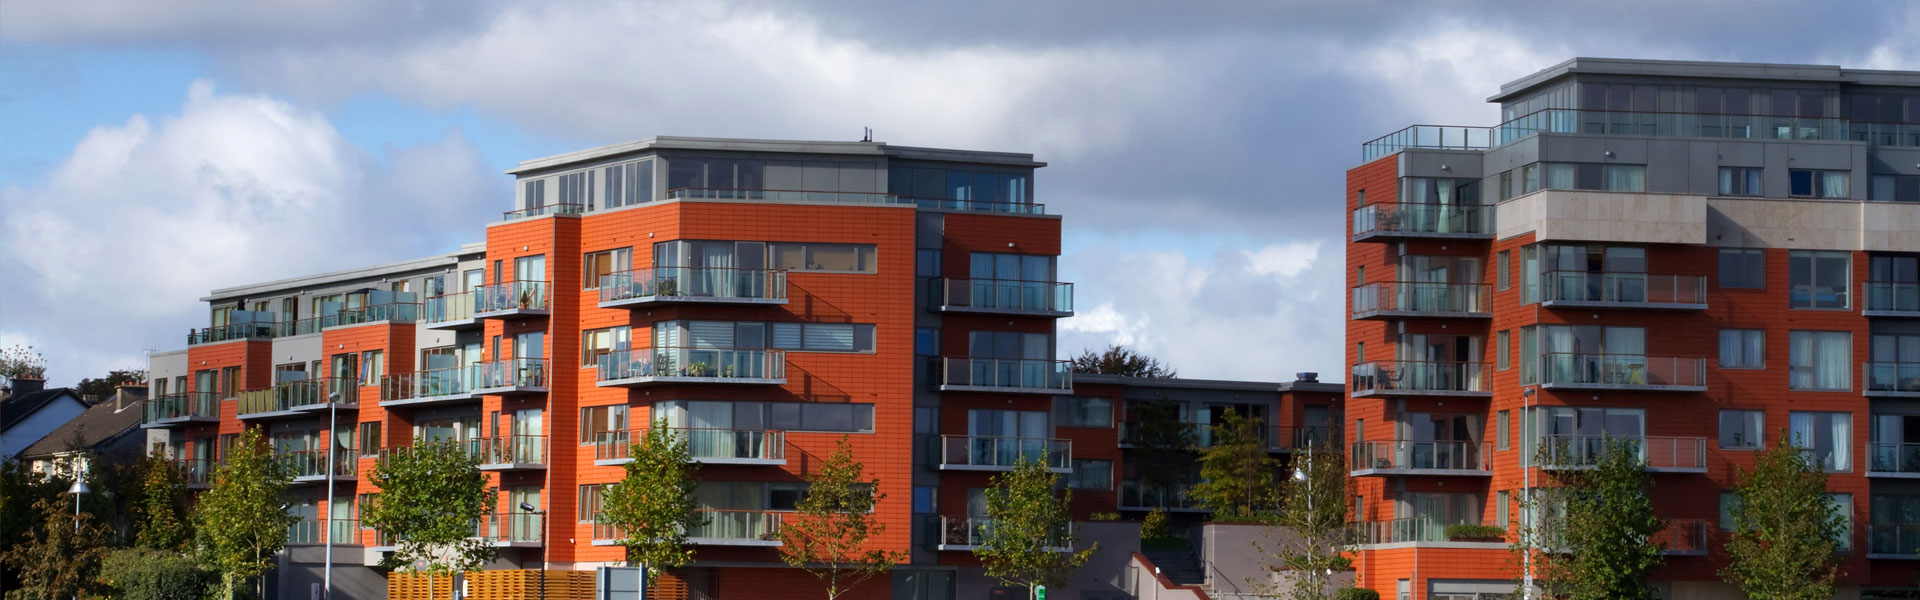 professional Commercial property management in Killmore Upper